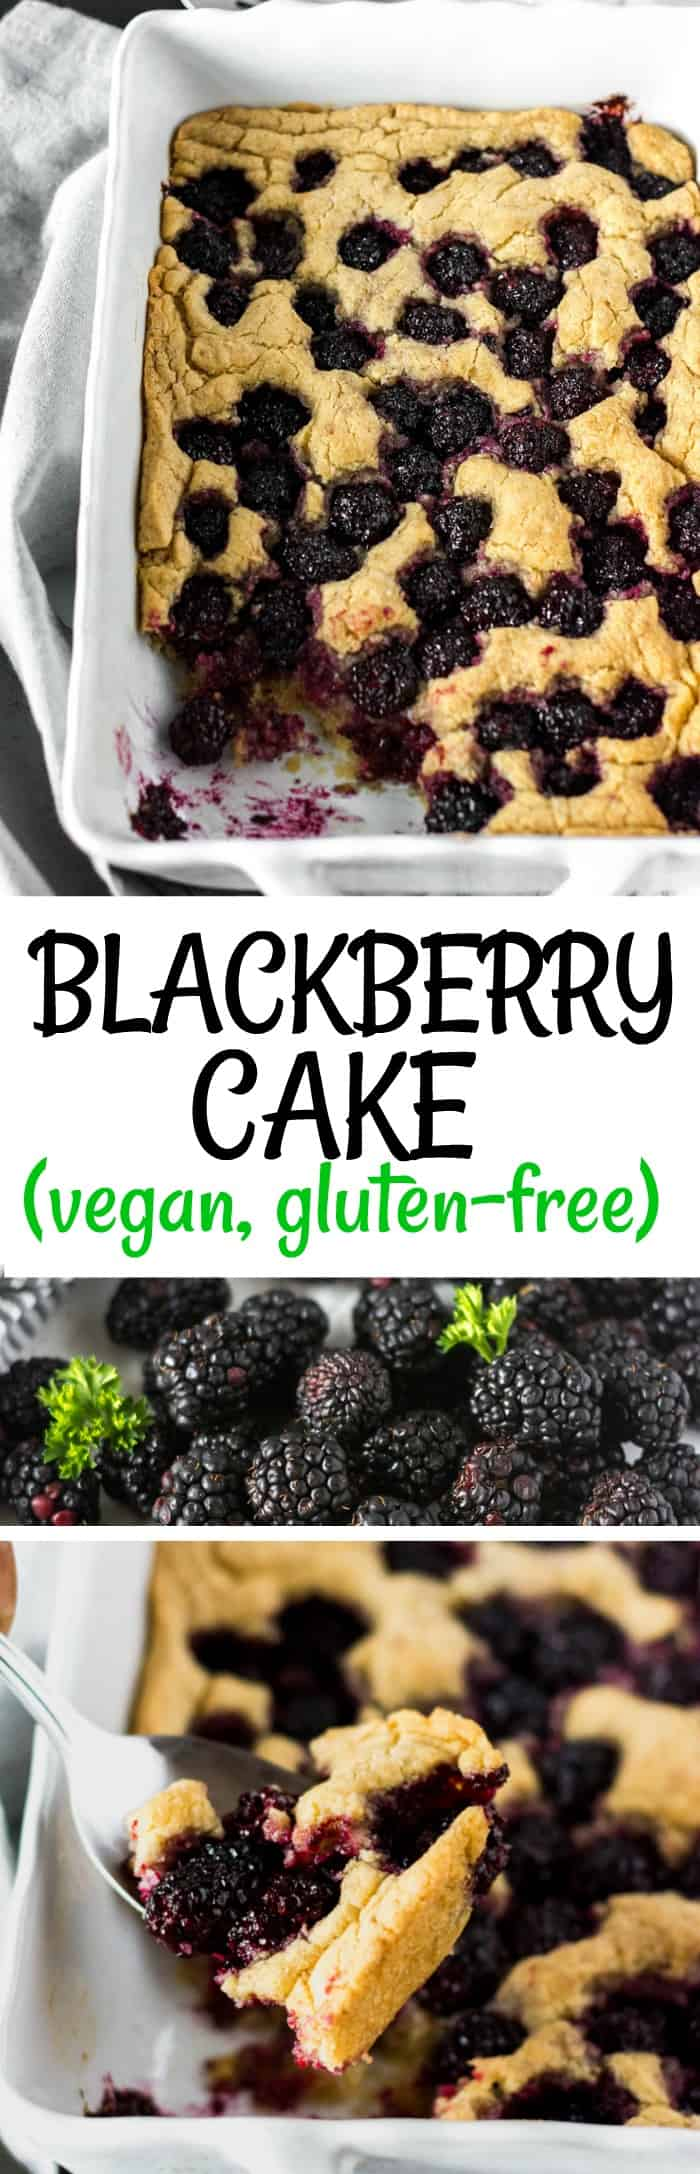 Vegan Gluten-Free Blackberry Cake